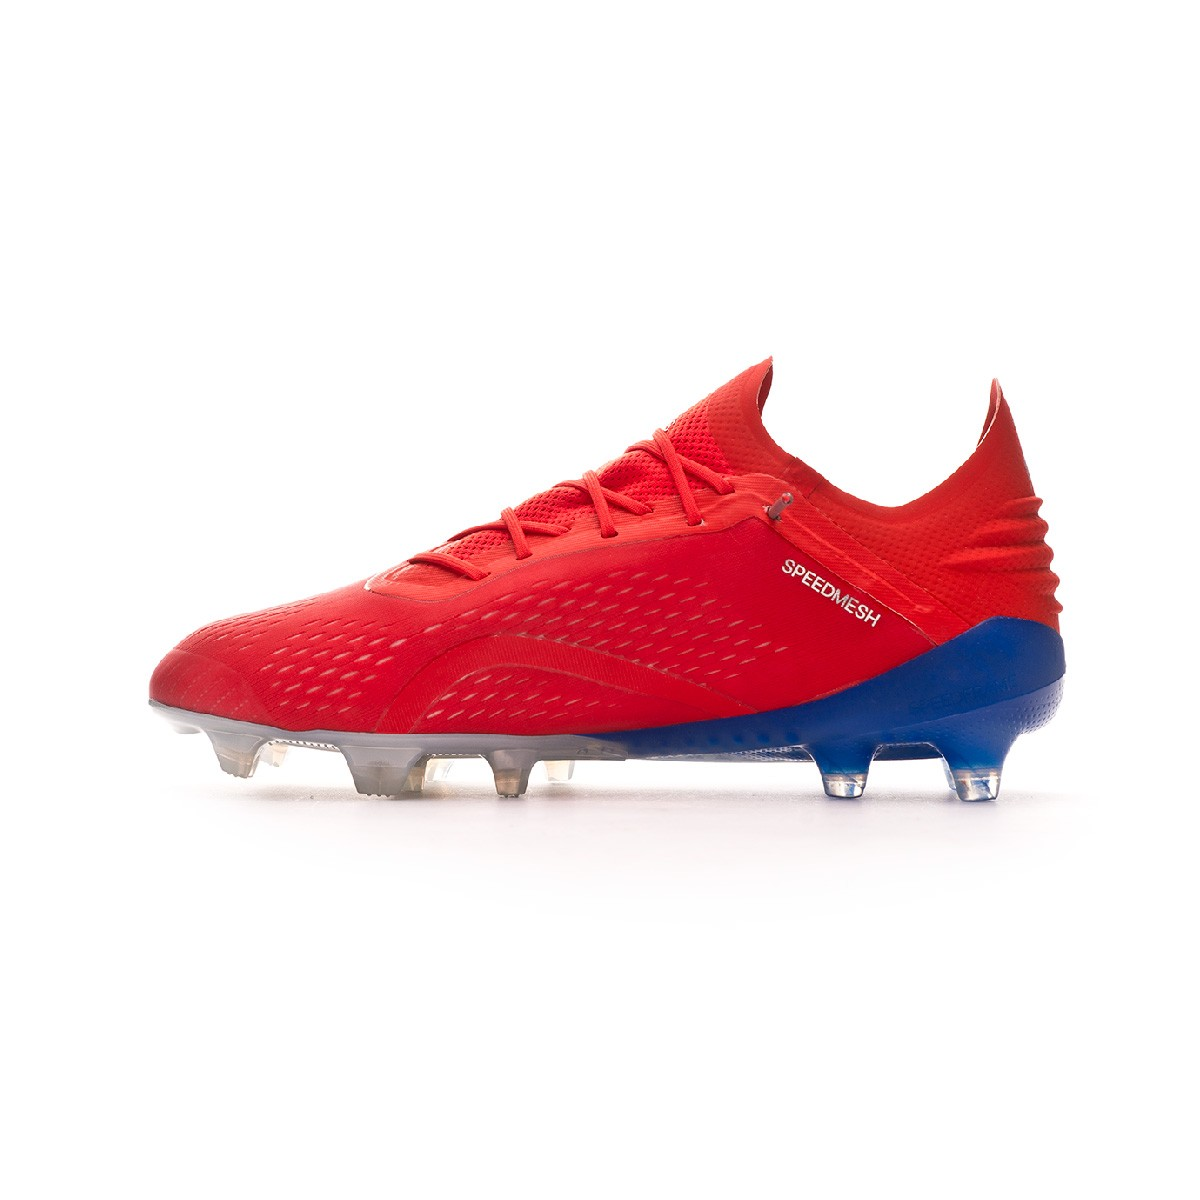 27c82833b Football Boots adidas X 18.1 FG Active red-Silver metallic-Bold blue -  Football store Fútbol Emotion